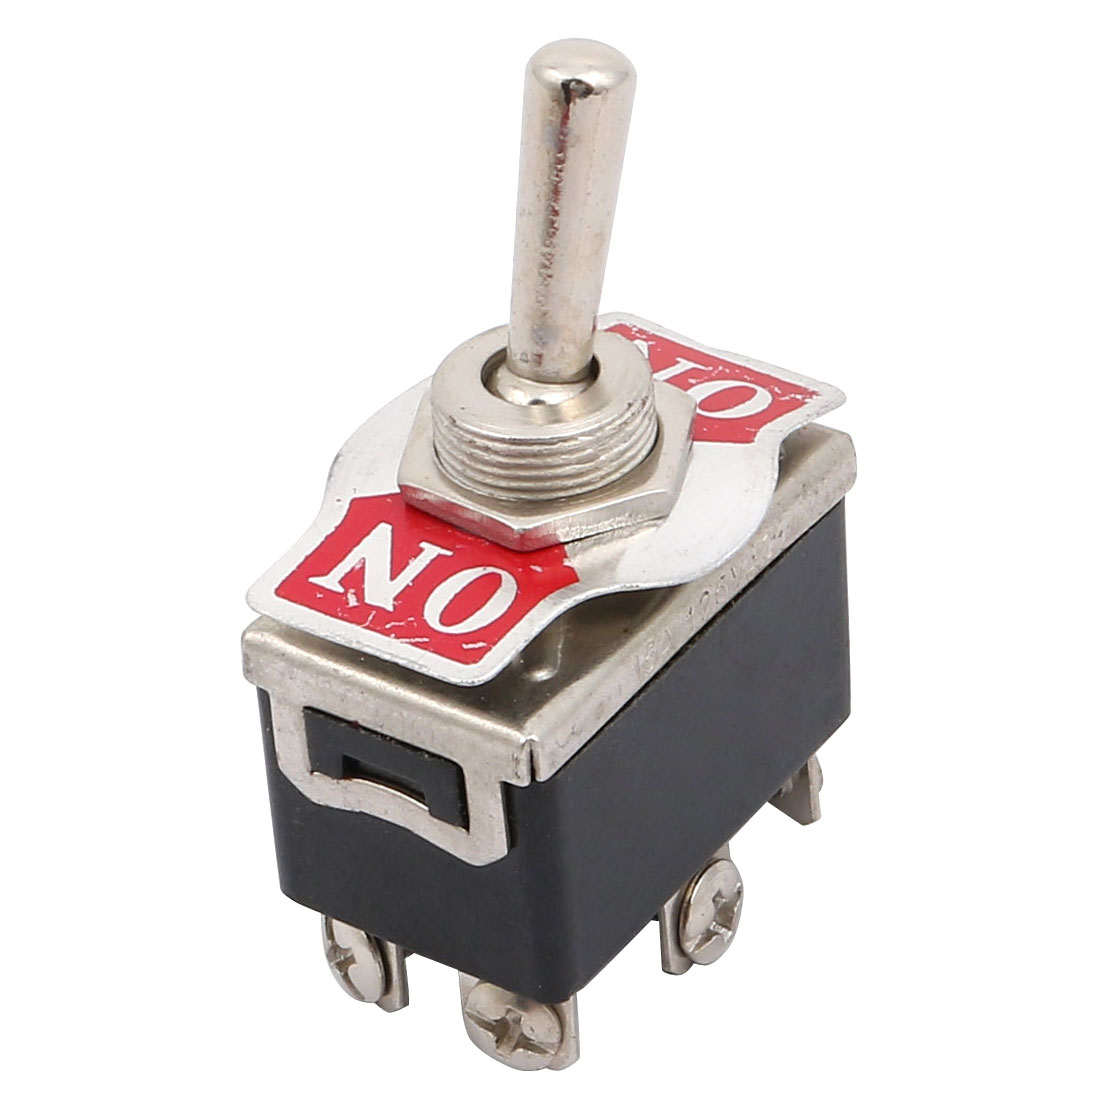 Ac 250v 10a 125v 15a Metal Handle On Dpdt Toggle Switch W 6 Screw Wiring Light Terminals